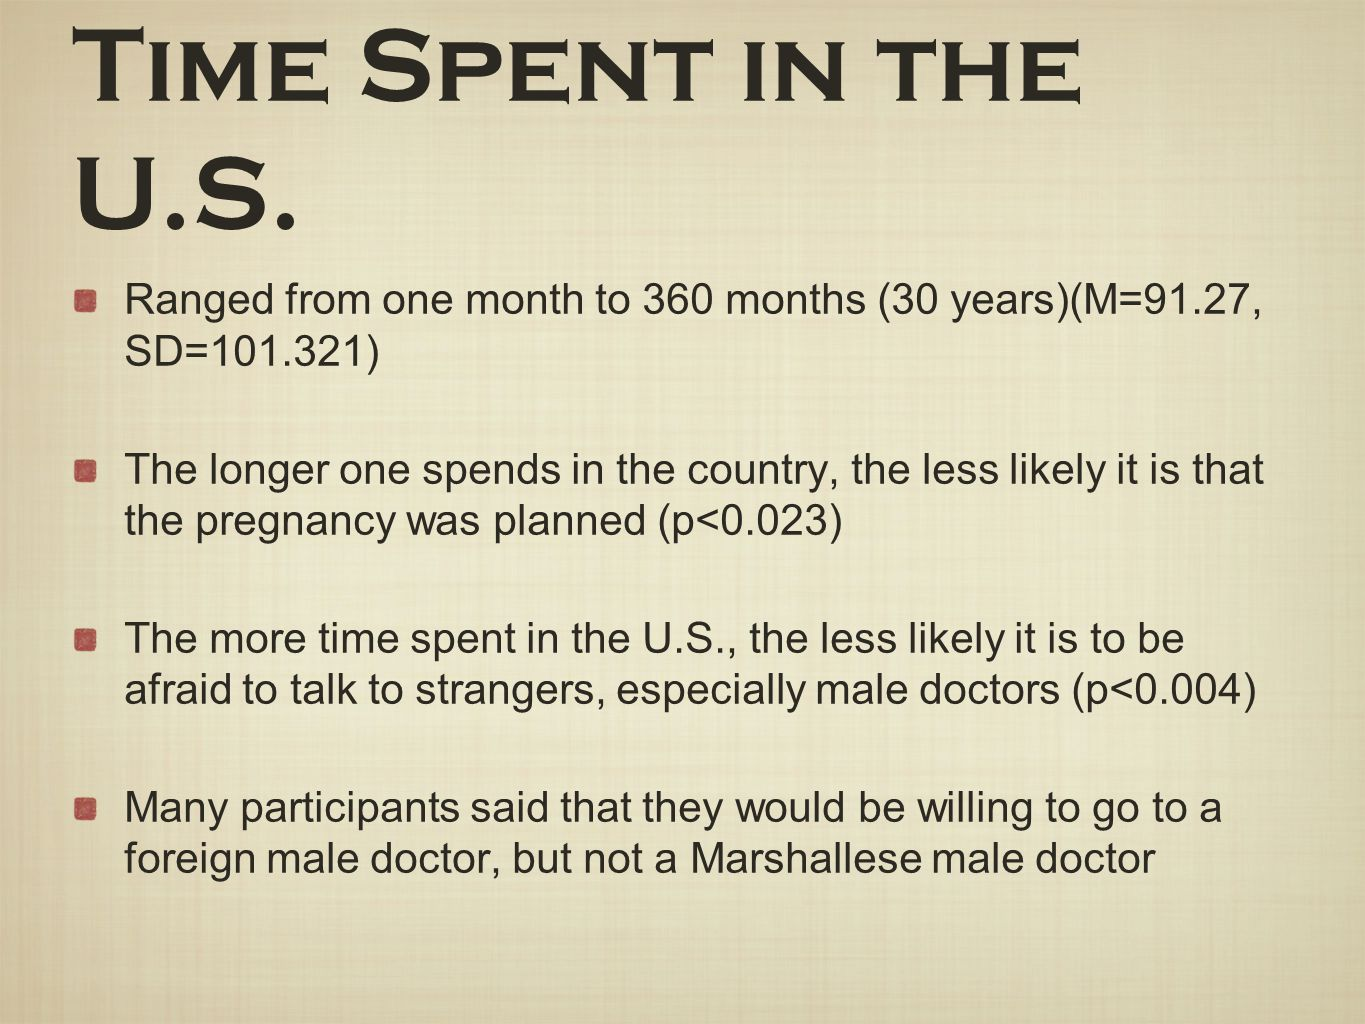 Time Spent in the U.S. Ranged from one month to 360 months (30 years)(M=91.27, SD=101.321)